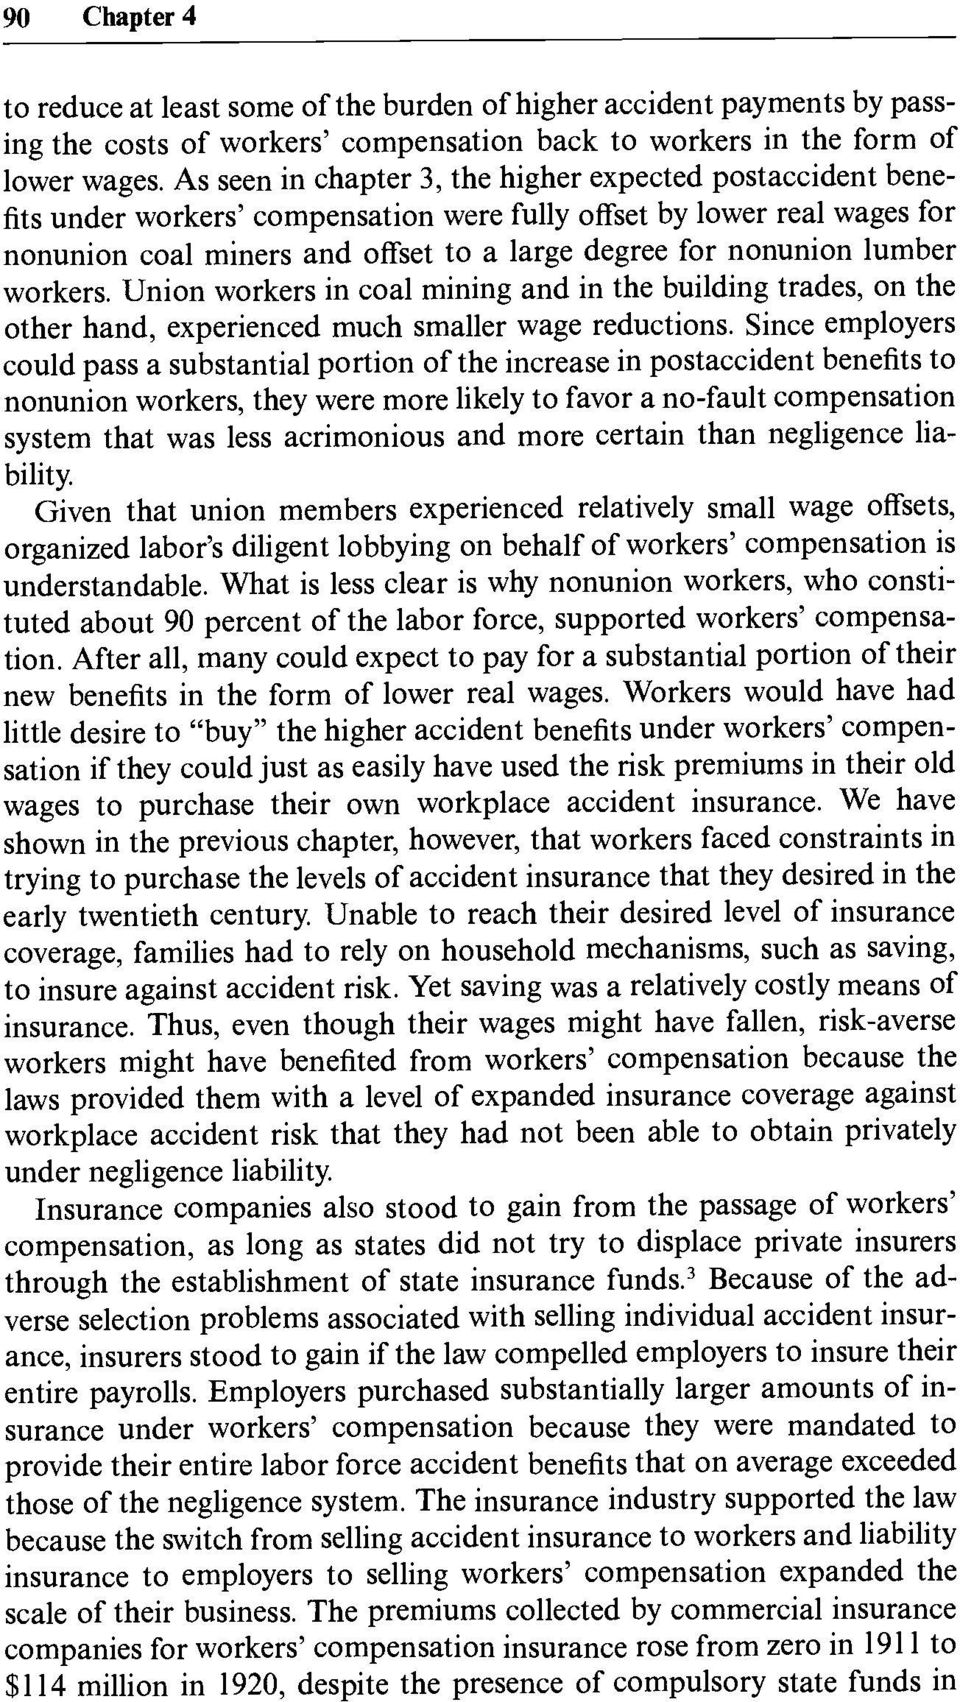 lumber workers. Union workers in coal mining and in the building trades, on the other hand, experienced much smaller wage reductions.